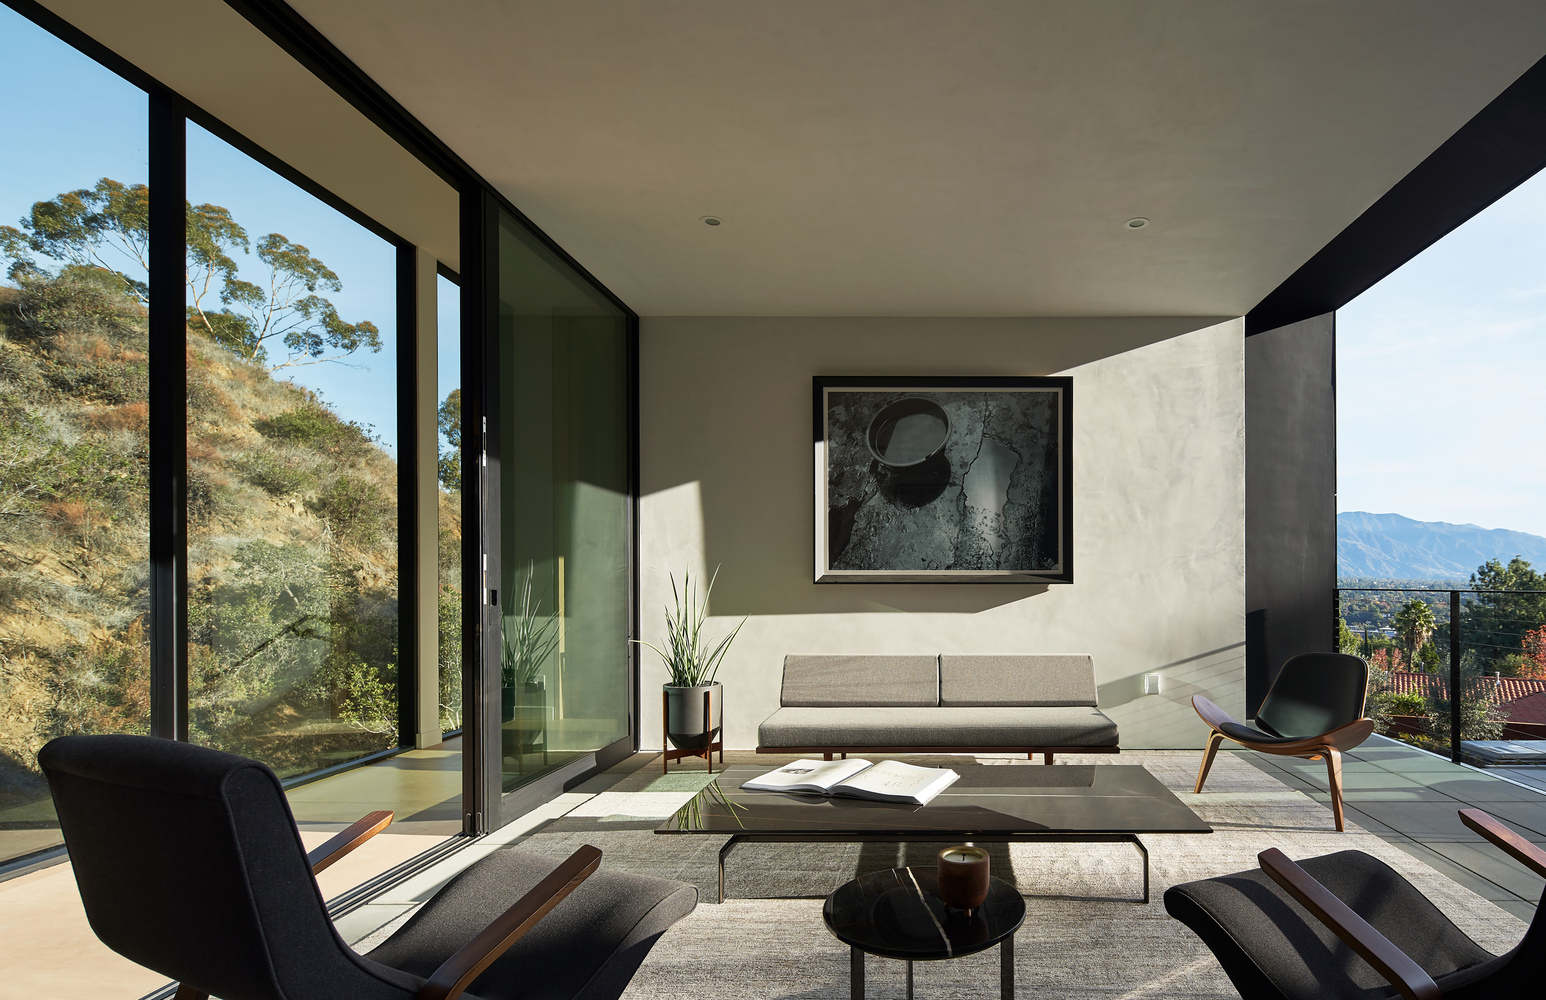 living room with big glass windows let the sunlight enters the room